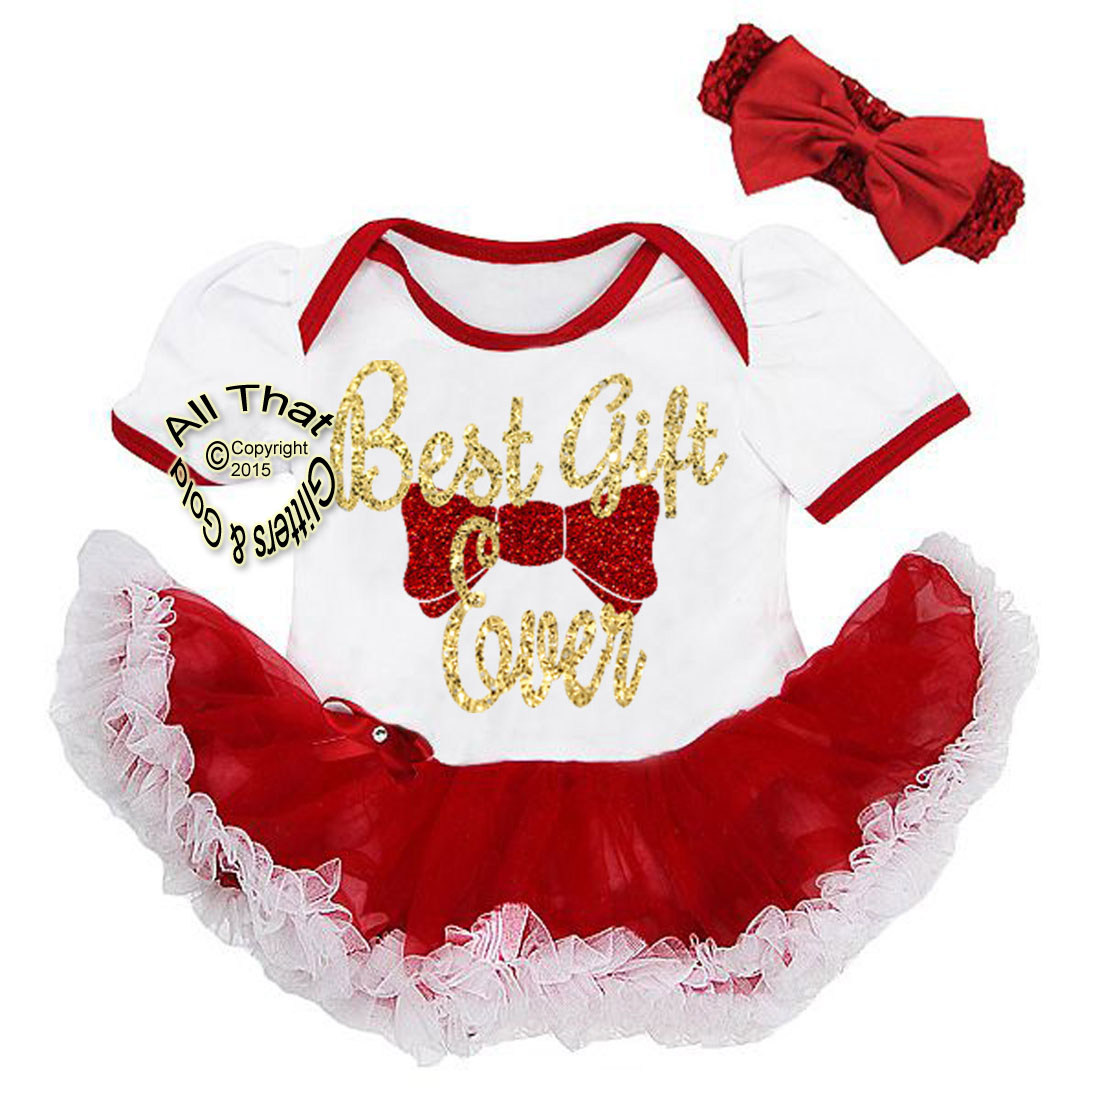 Christmas Tutu Outfits.Christmas Outfits For Baby Girl Cute Glitter Best Gift Ever Tutu Dress Red White